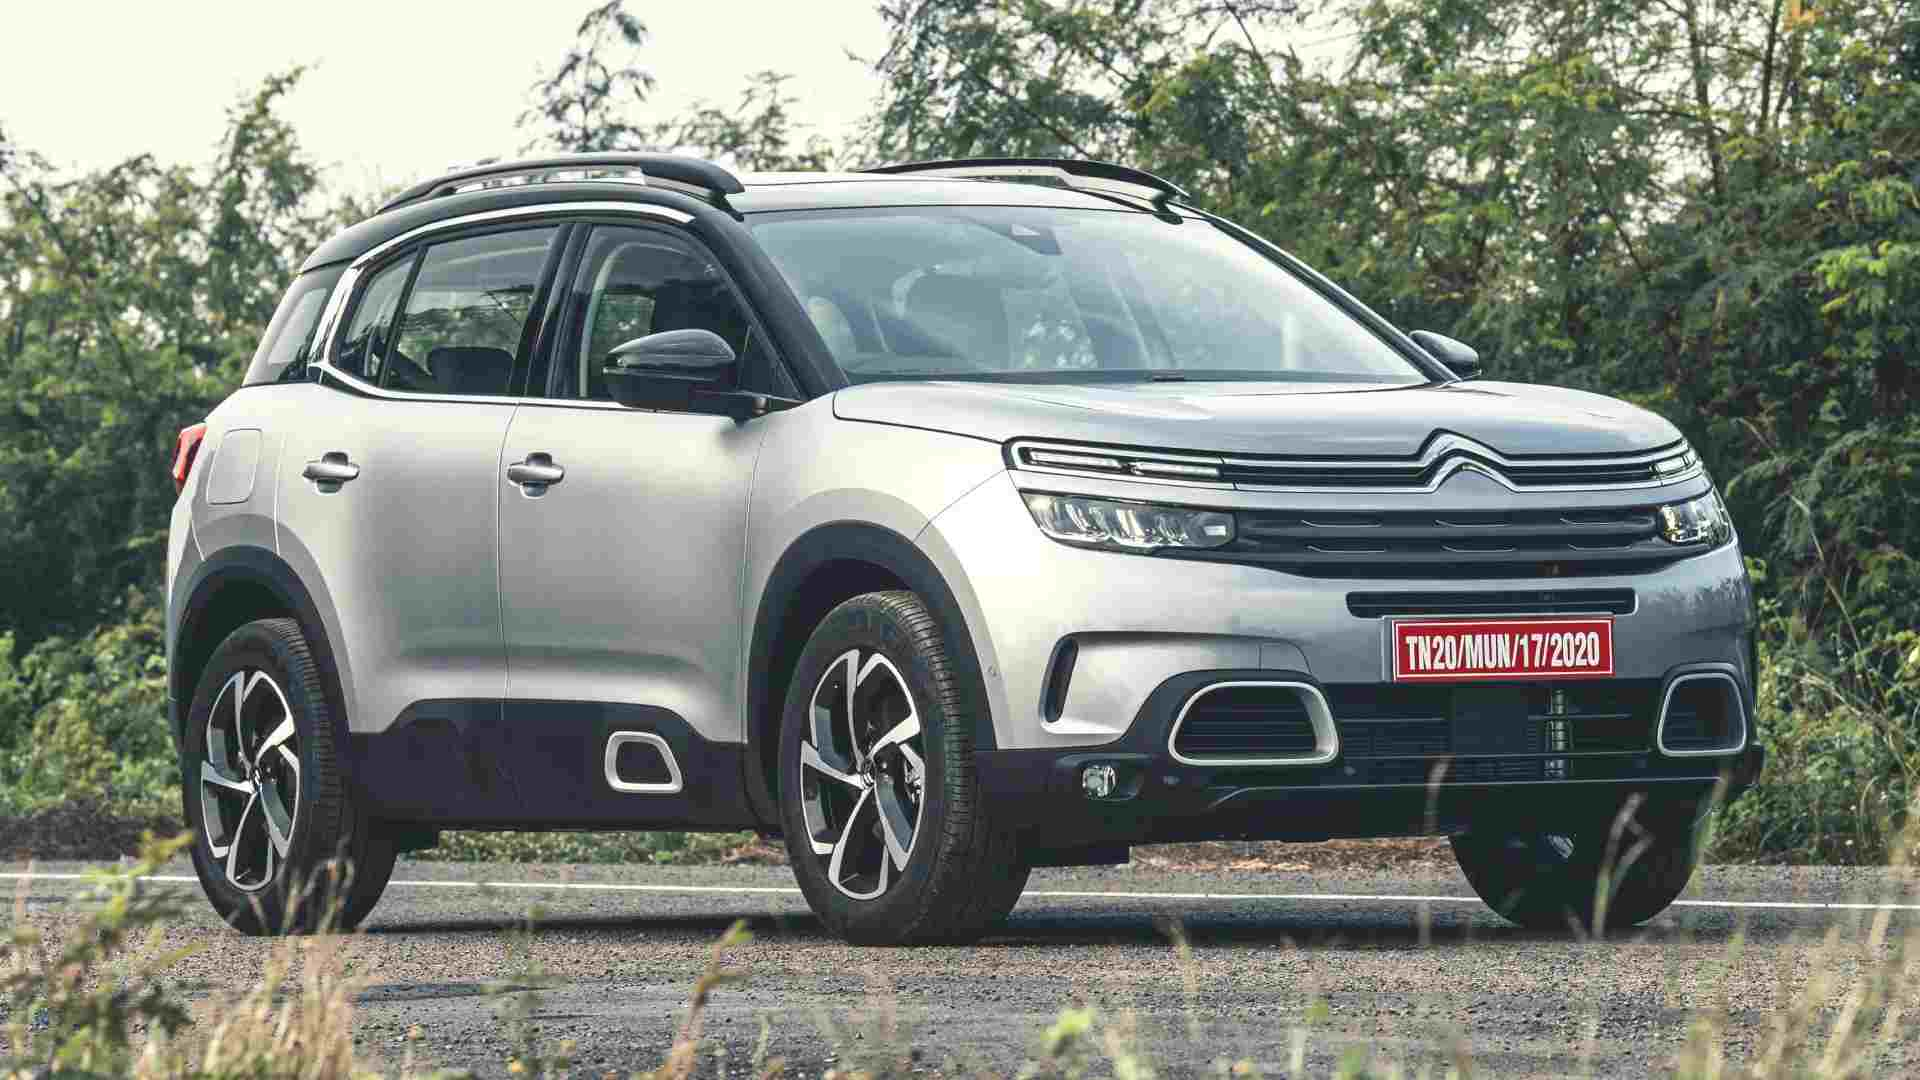 Citroen C5 Aircross India launch on 7 April, to be sold online and via 10 'La Maison' dealerships- Technology News, FP